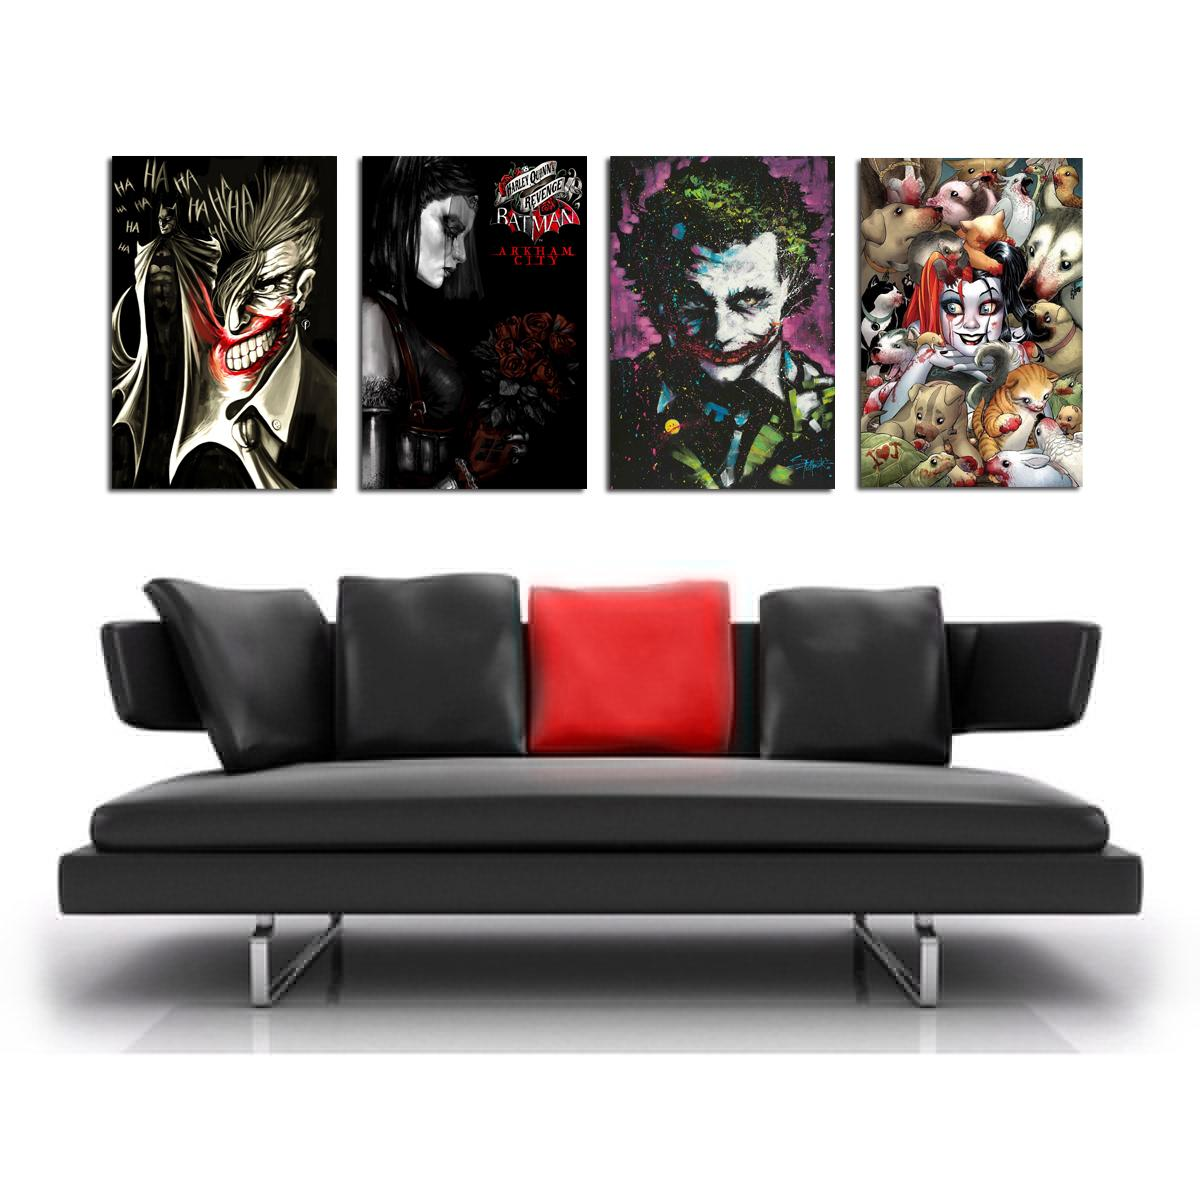 Batman joker Harley Quinn -3,4 Pieces Canvas Prints Wall Art Oil Painting Home Decor (Unframed/Framed)